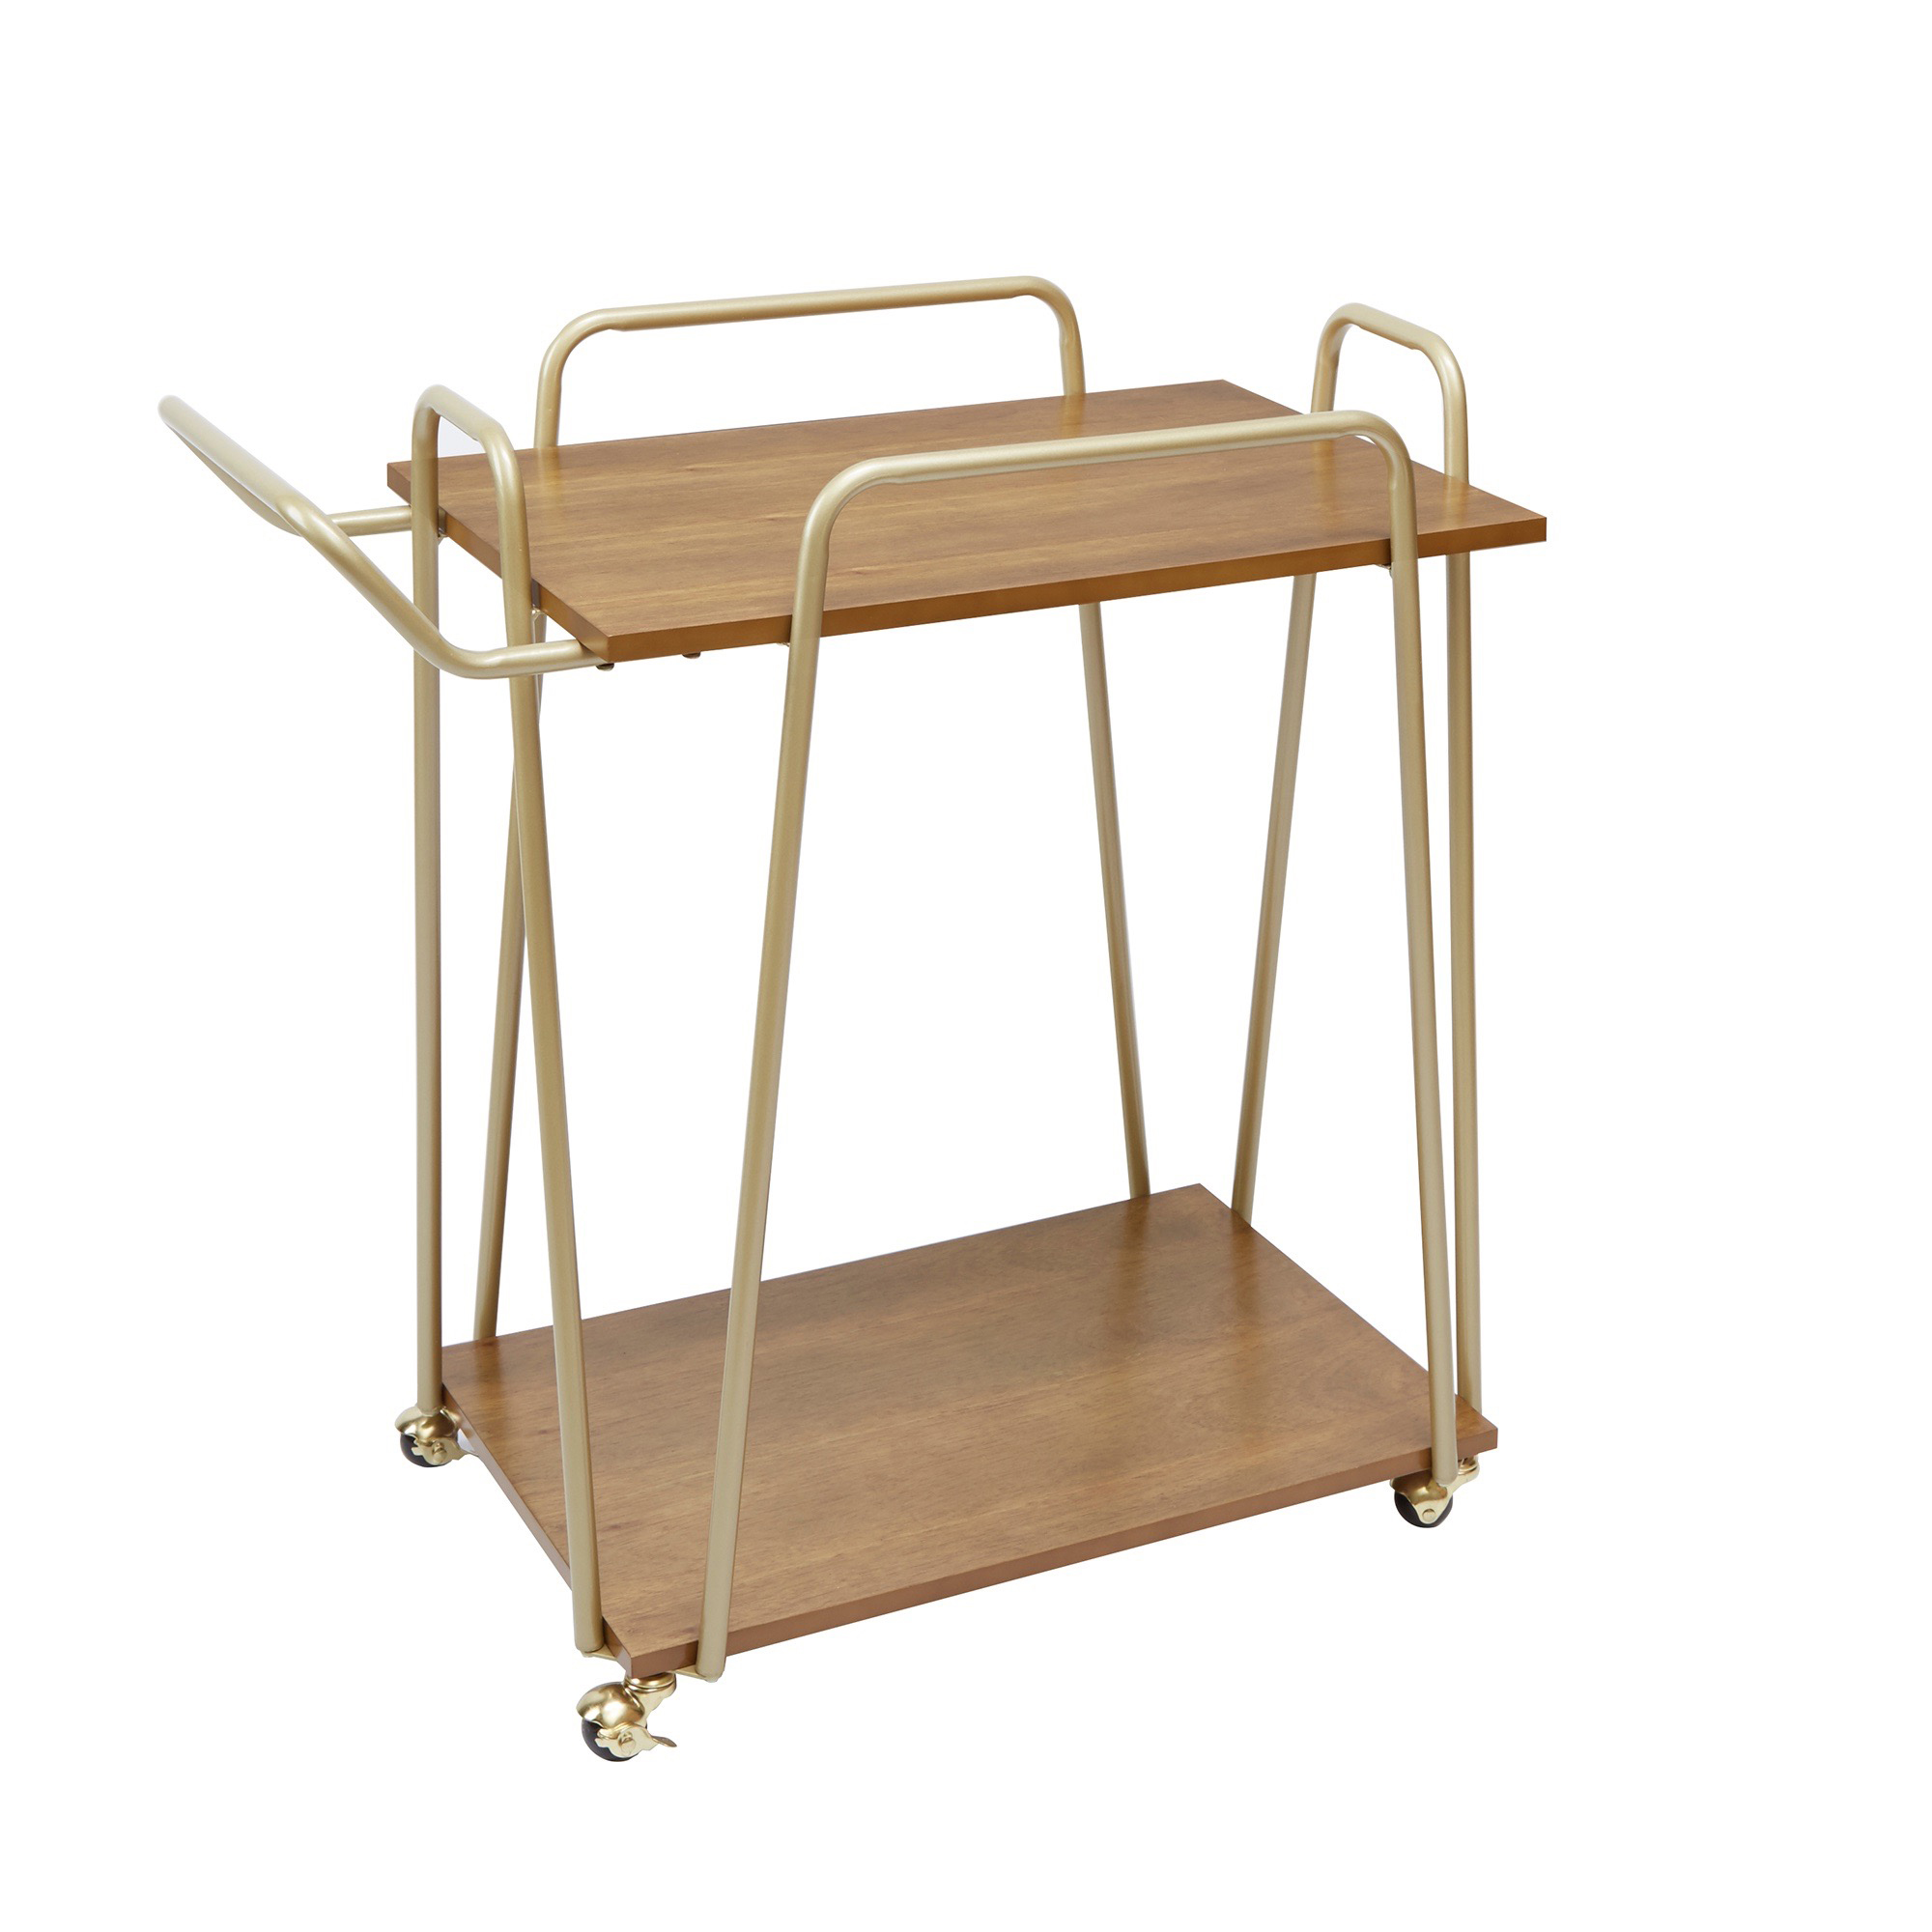 Better Homes & Gardens Giana Metal & Wood Modern Bar Cart, Gold Finish